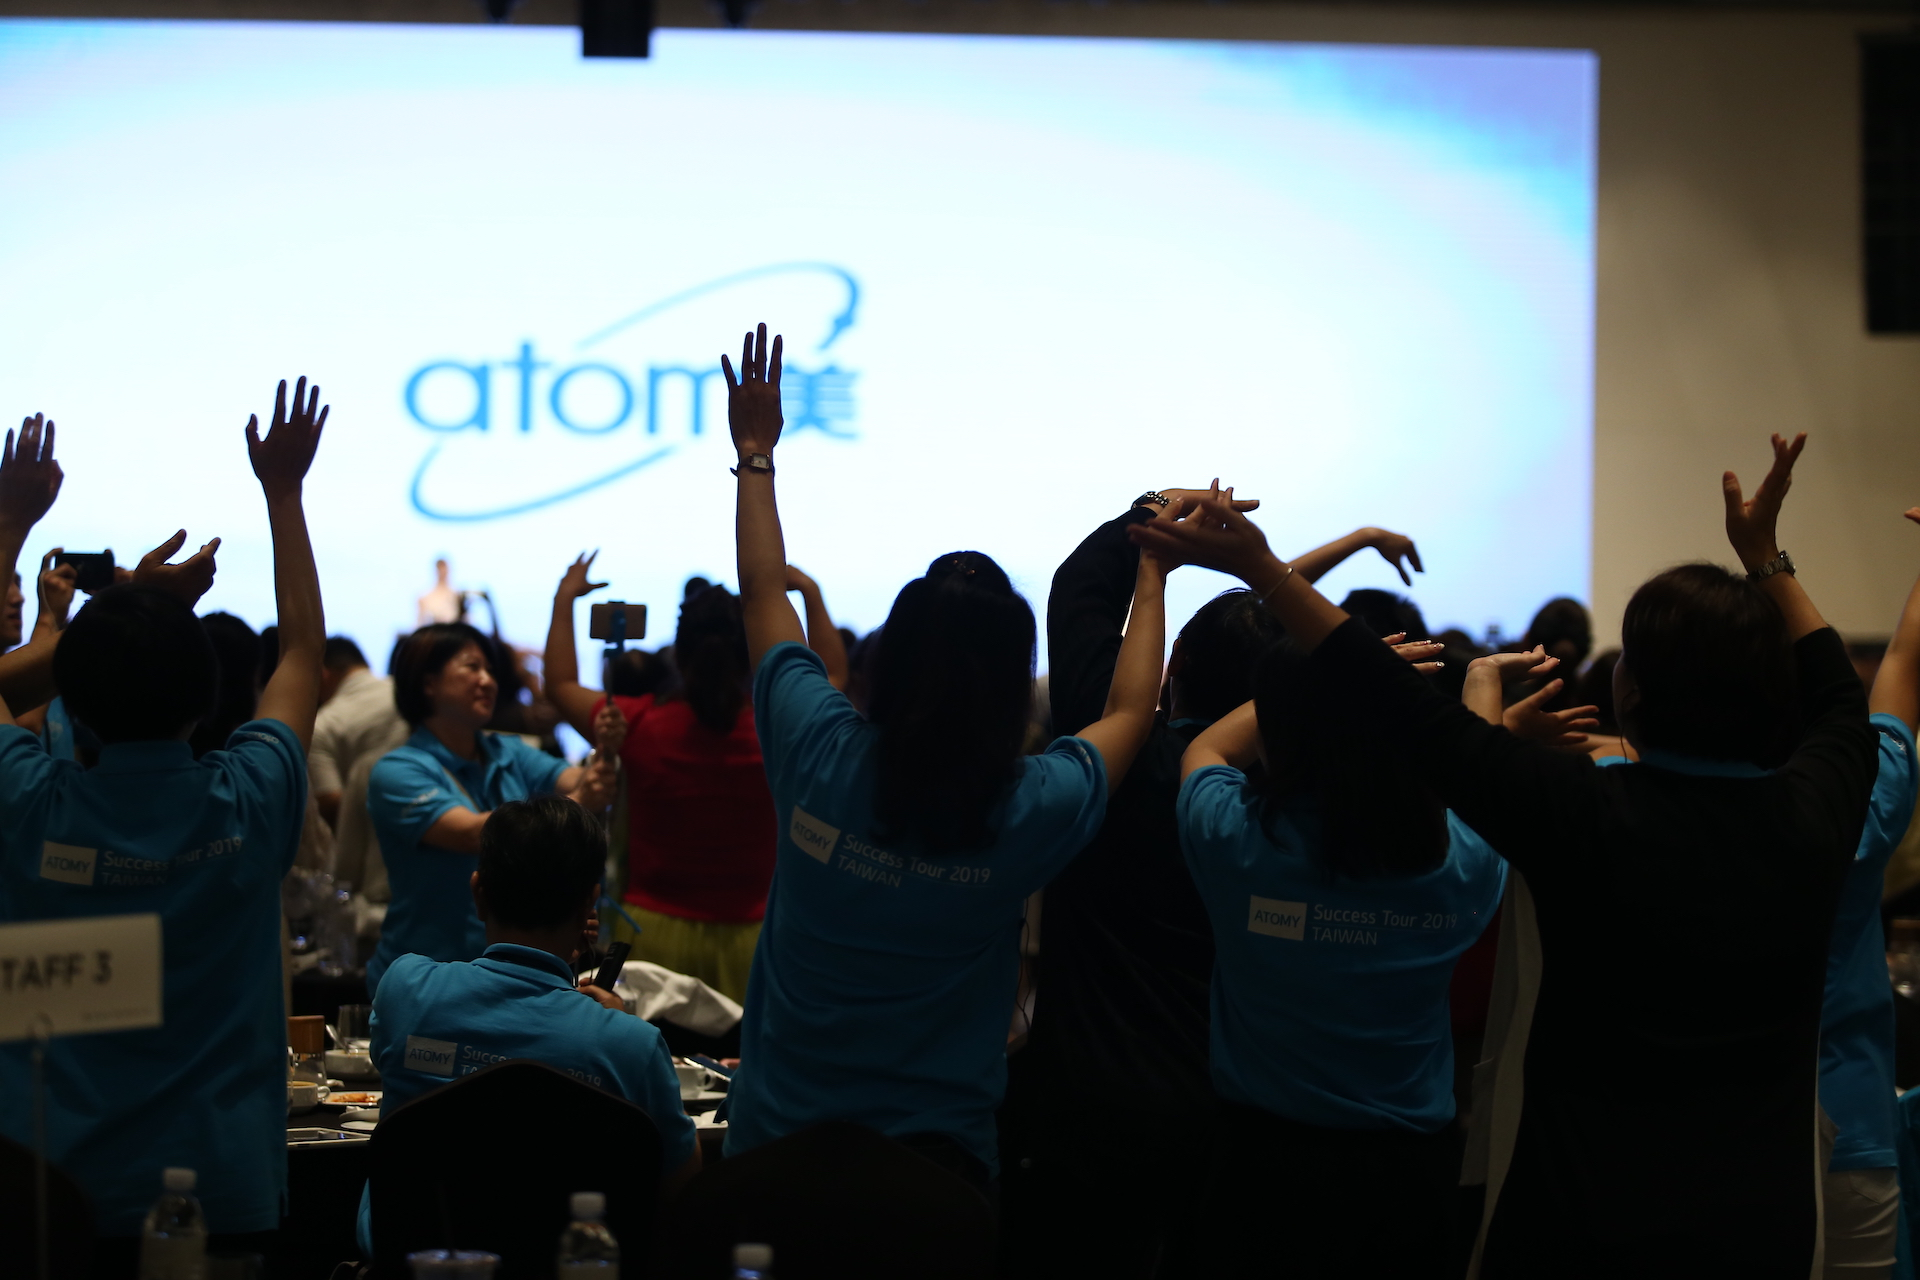 GLOBAL COMPANY ATOMY'S RE-VISIT TO SEOUL FOR A SUC